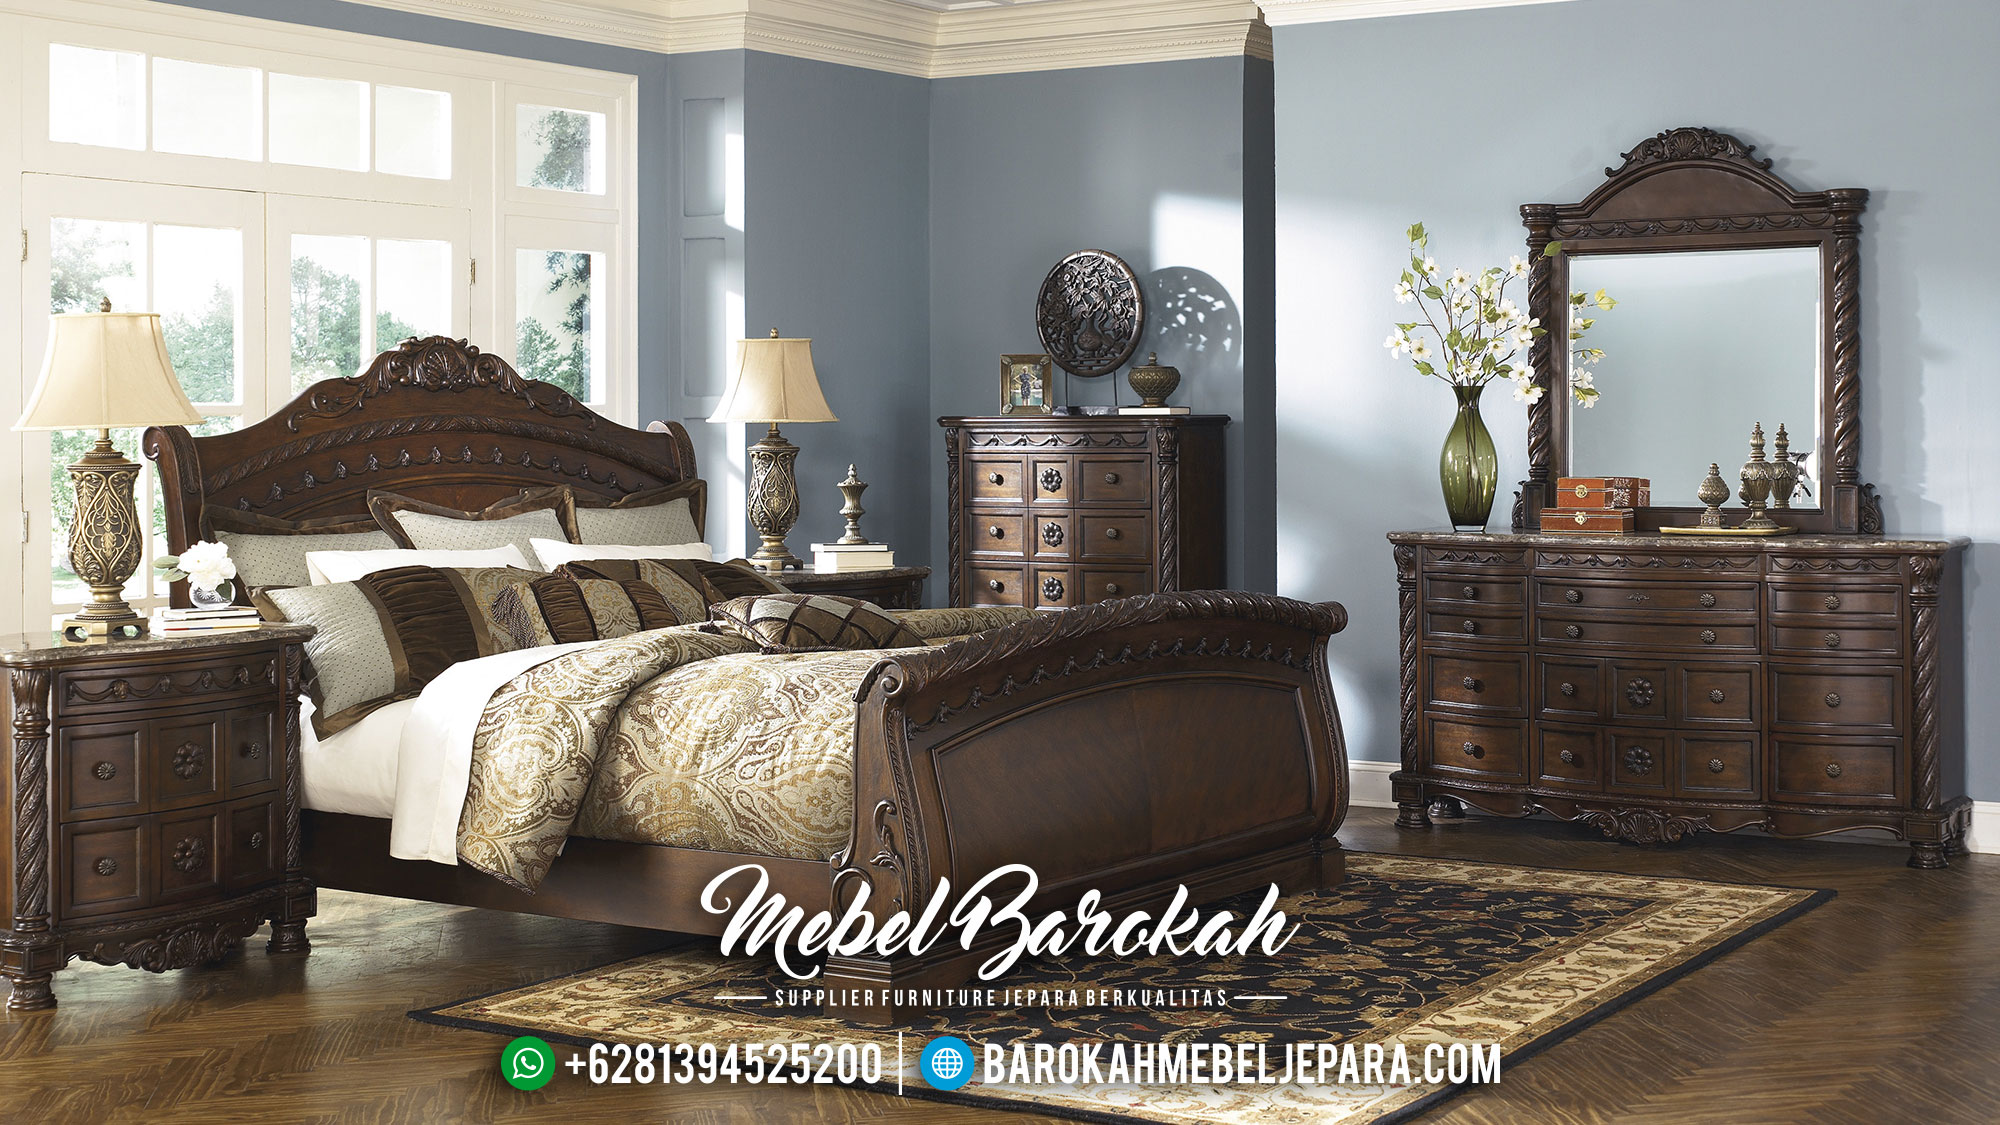 Mirror bedroom set 1600x1200 bedroom amazing design with for Furniture jepara